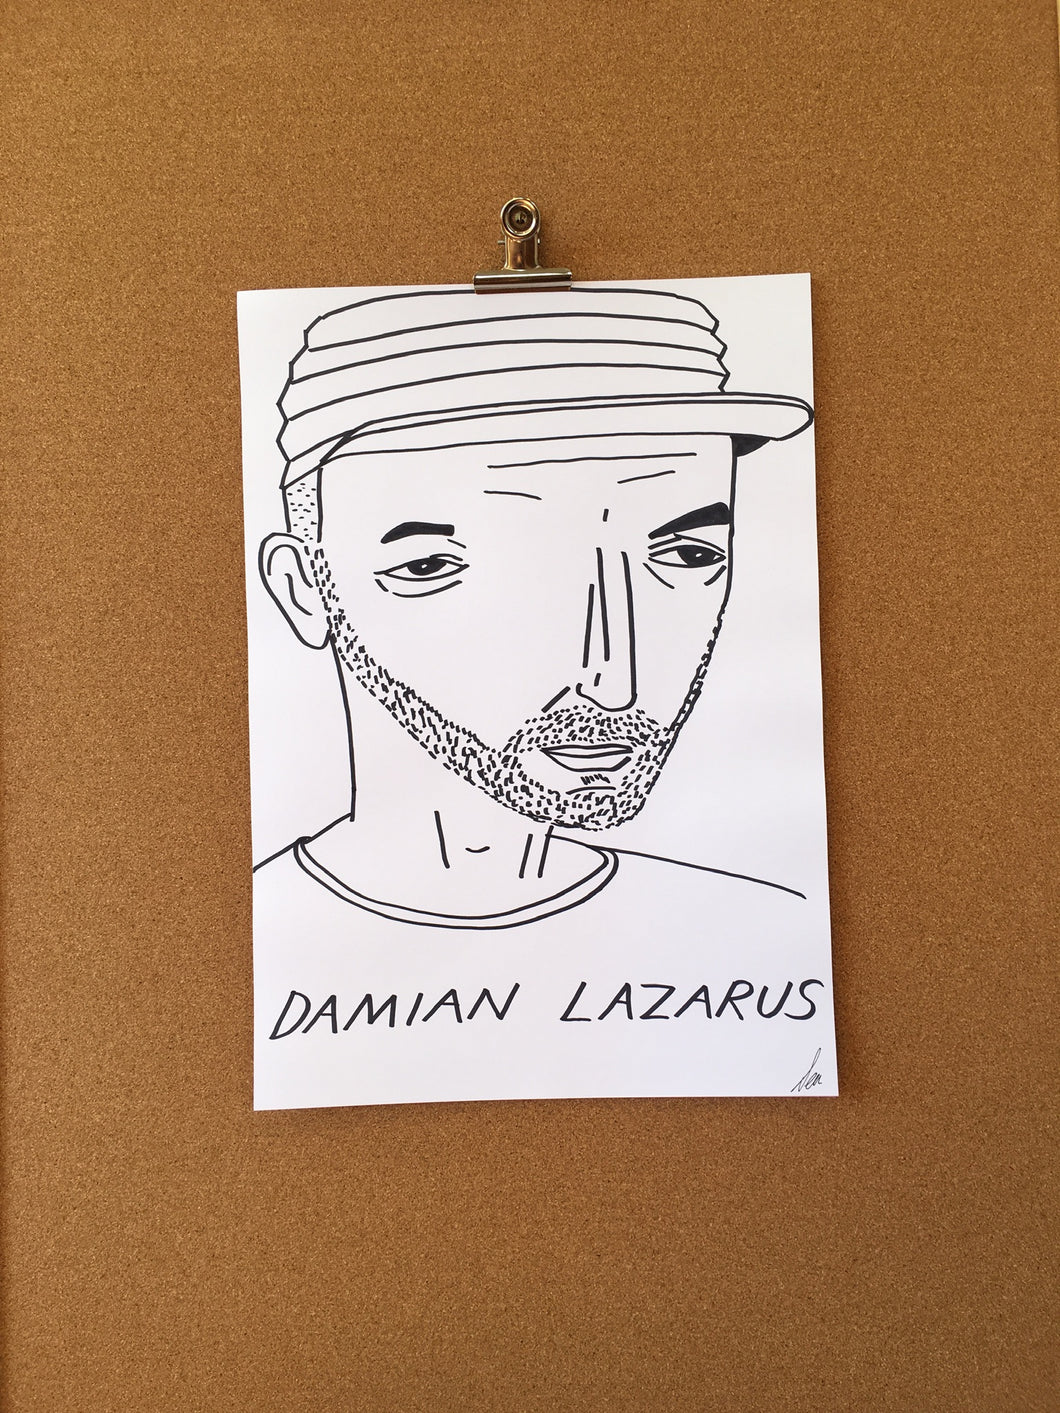 Badly Drawn Damian Lazarus - Original Drawing - A3.